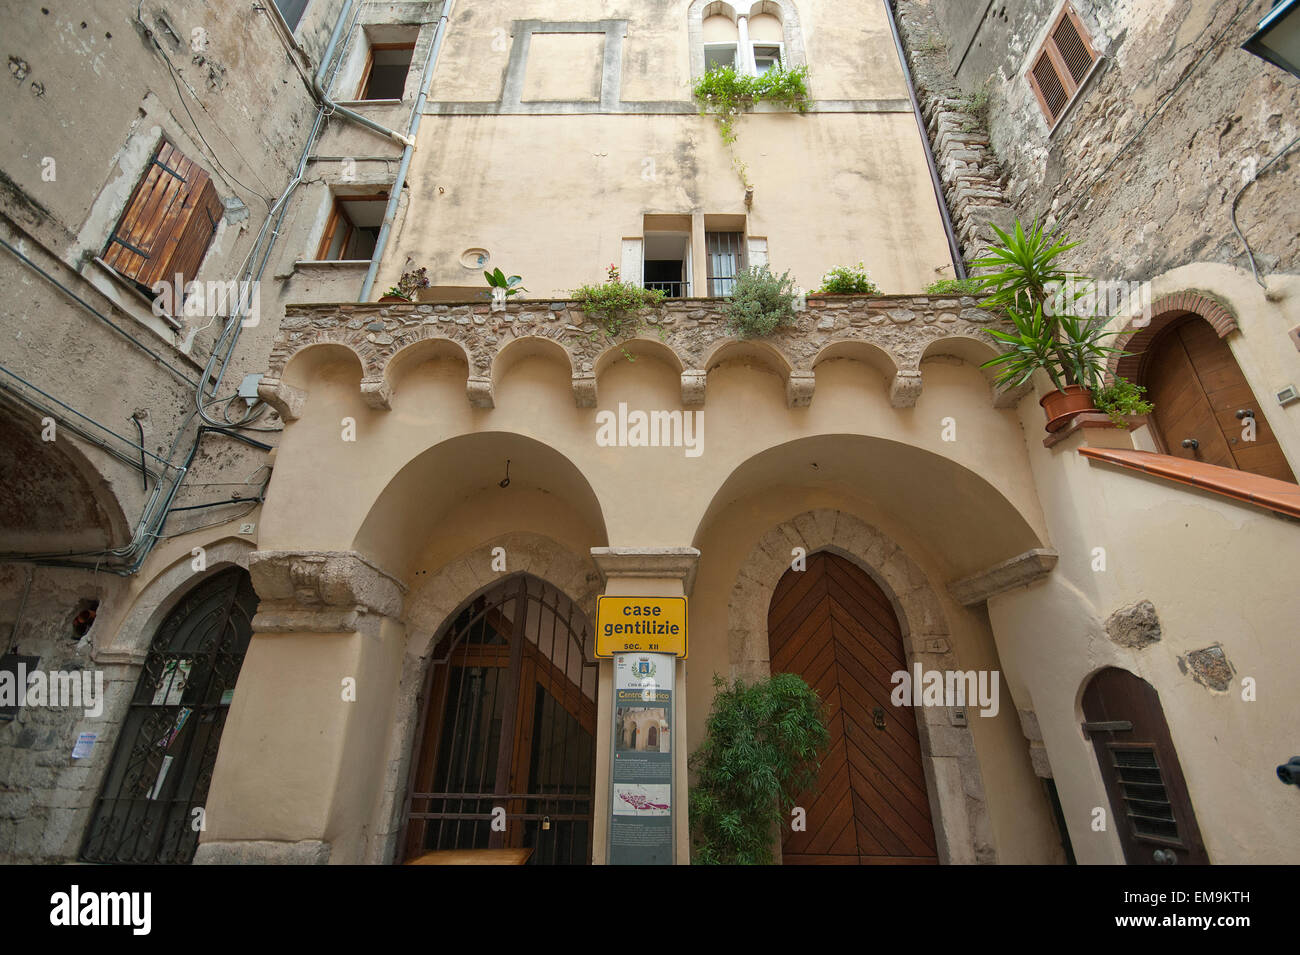 Terracina, noble houses in the old town, Lazio, Italy - Stock Image